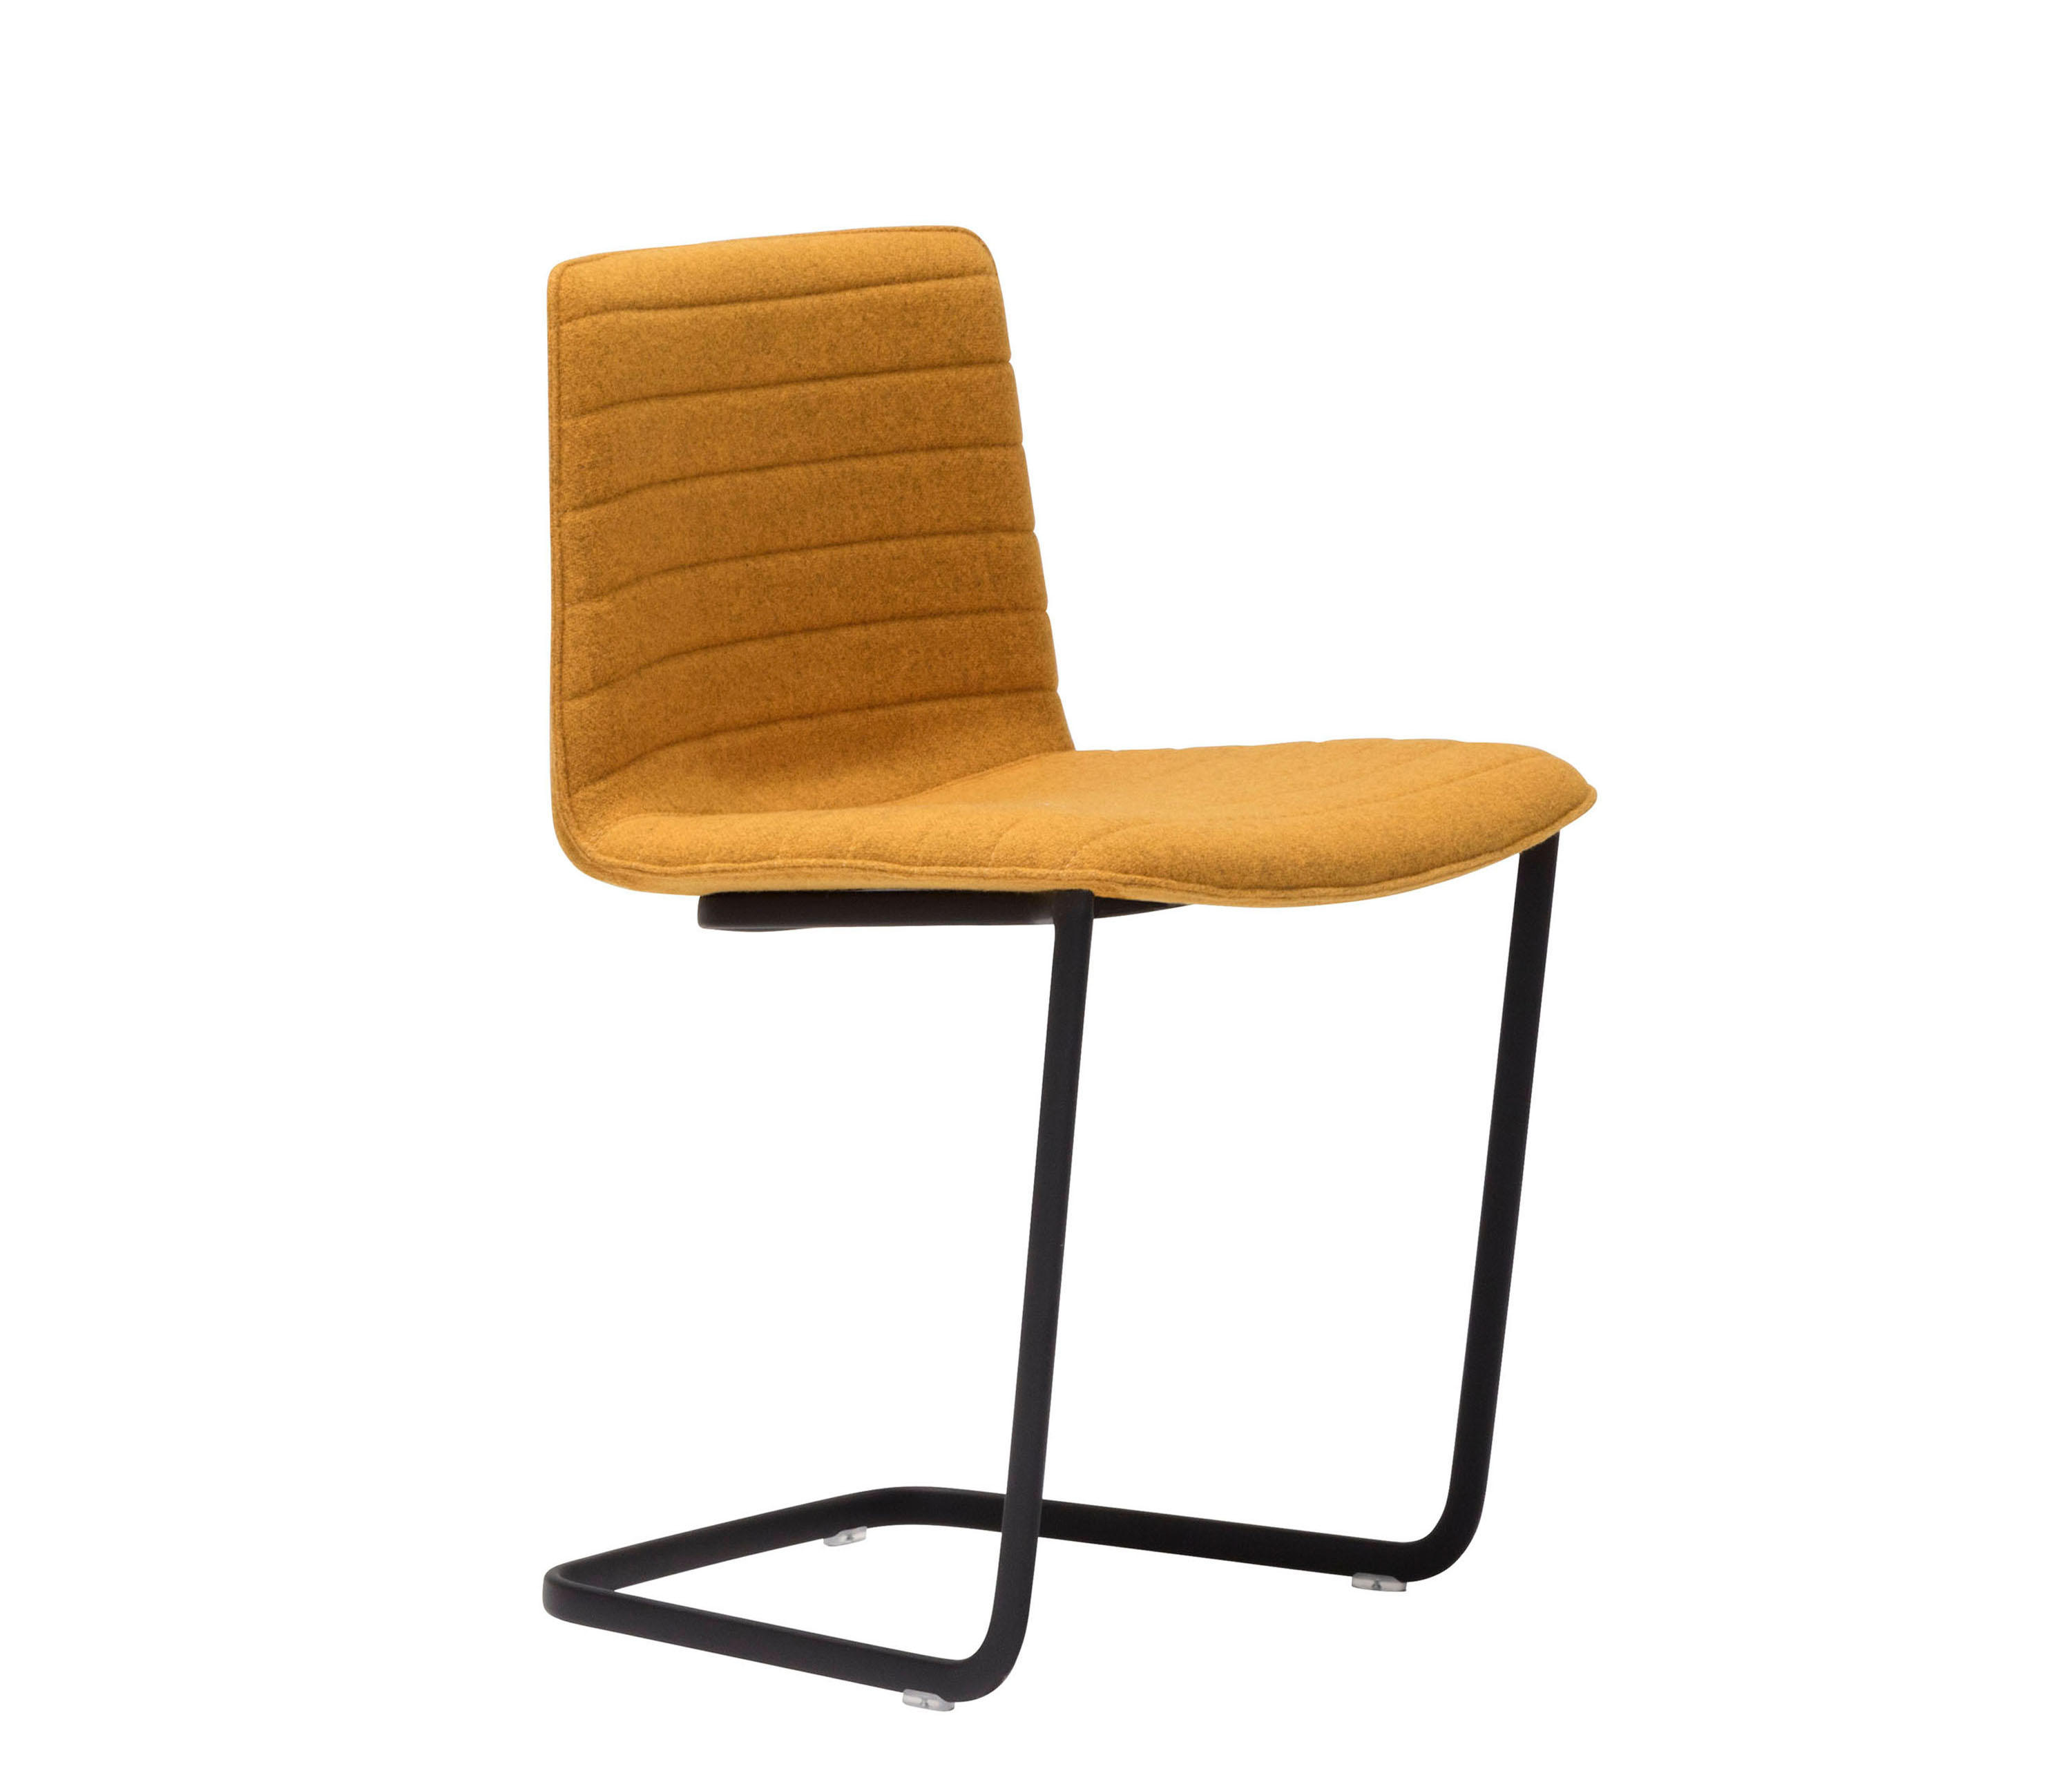 Flex Chairs Flex Chair Si1359 Chairs From Andreu World Architonic